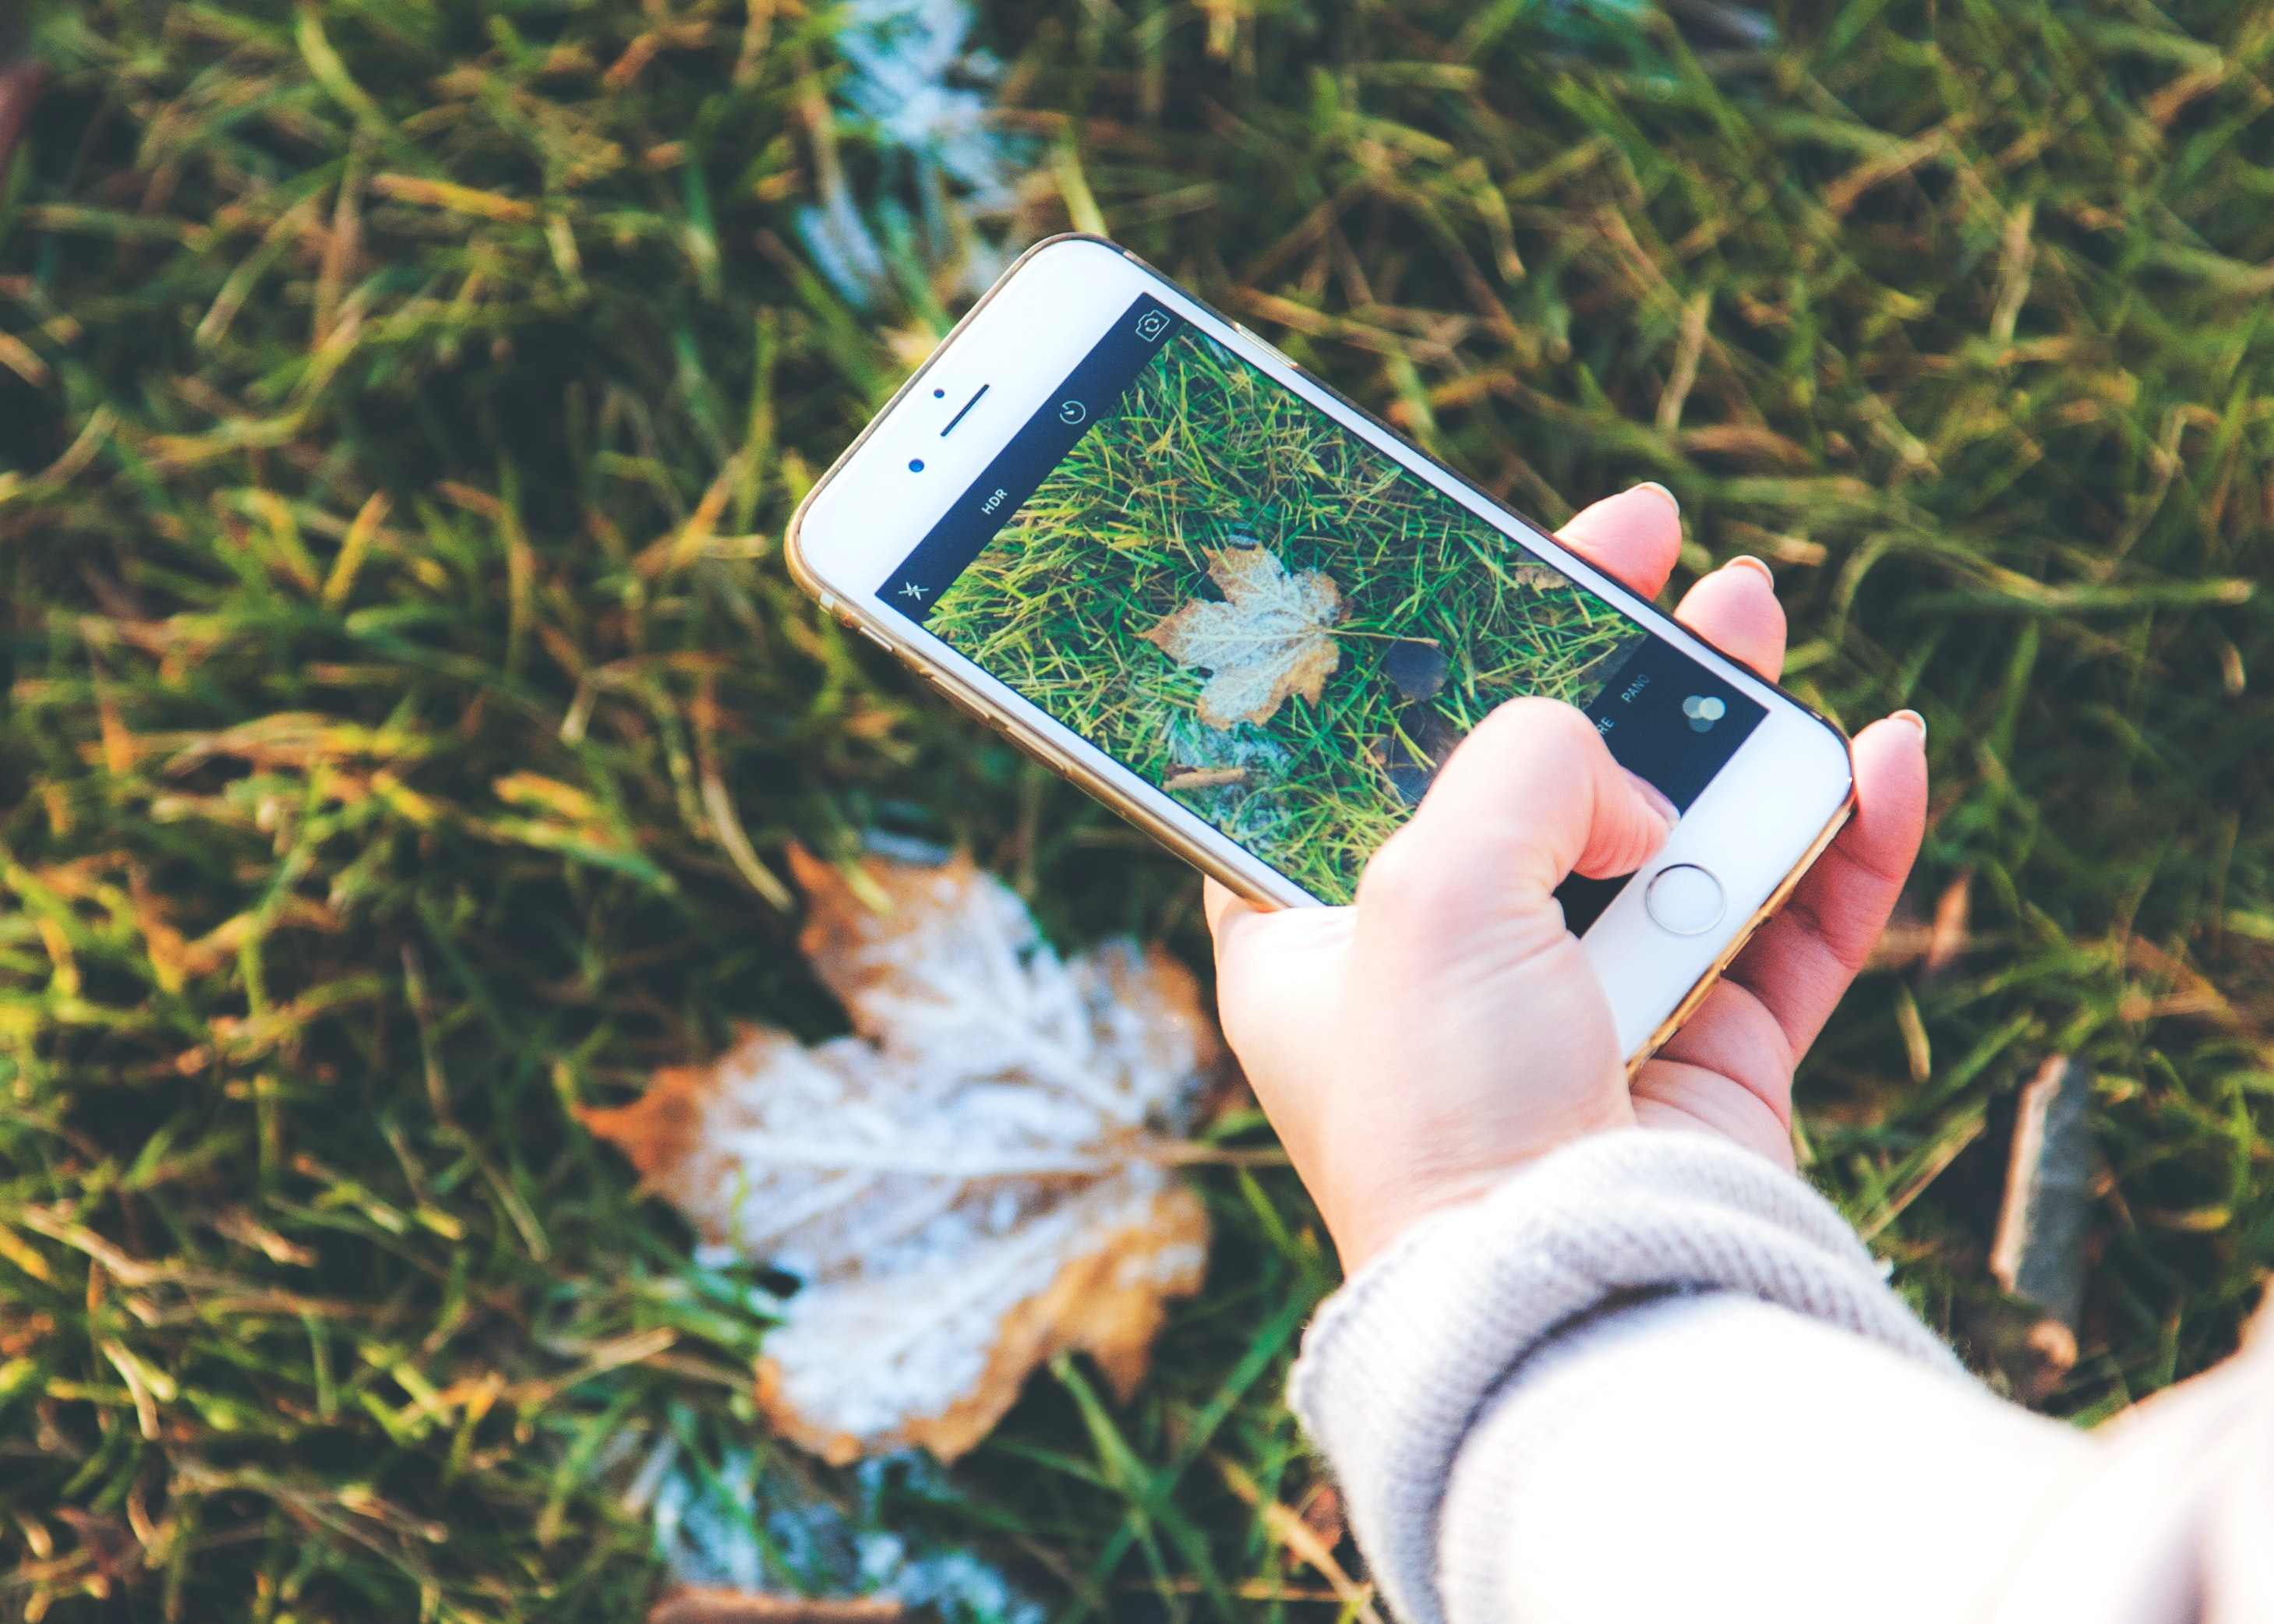 A person taking a photo of a frosty leaf on the grass with an iPhone Cellphone